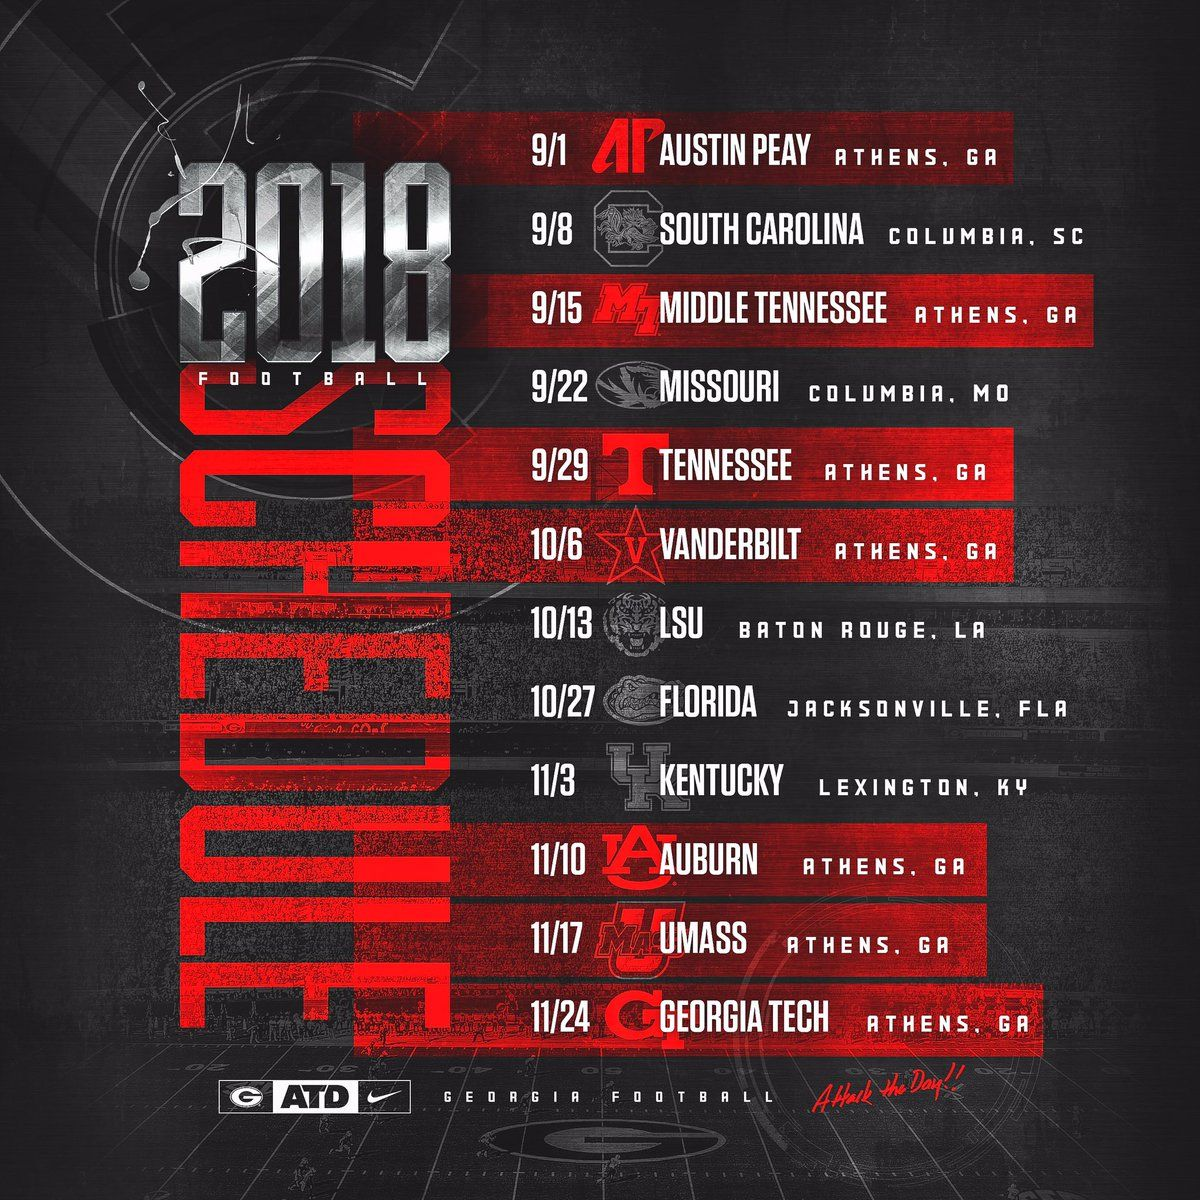 ga bulldog football schedule 2017 georgia bulldogs 2018 football schedule football 9973